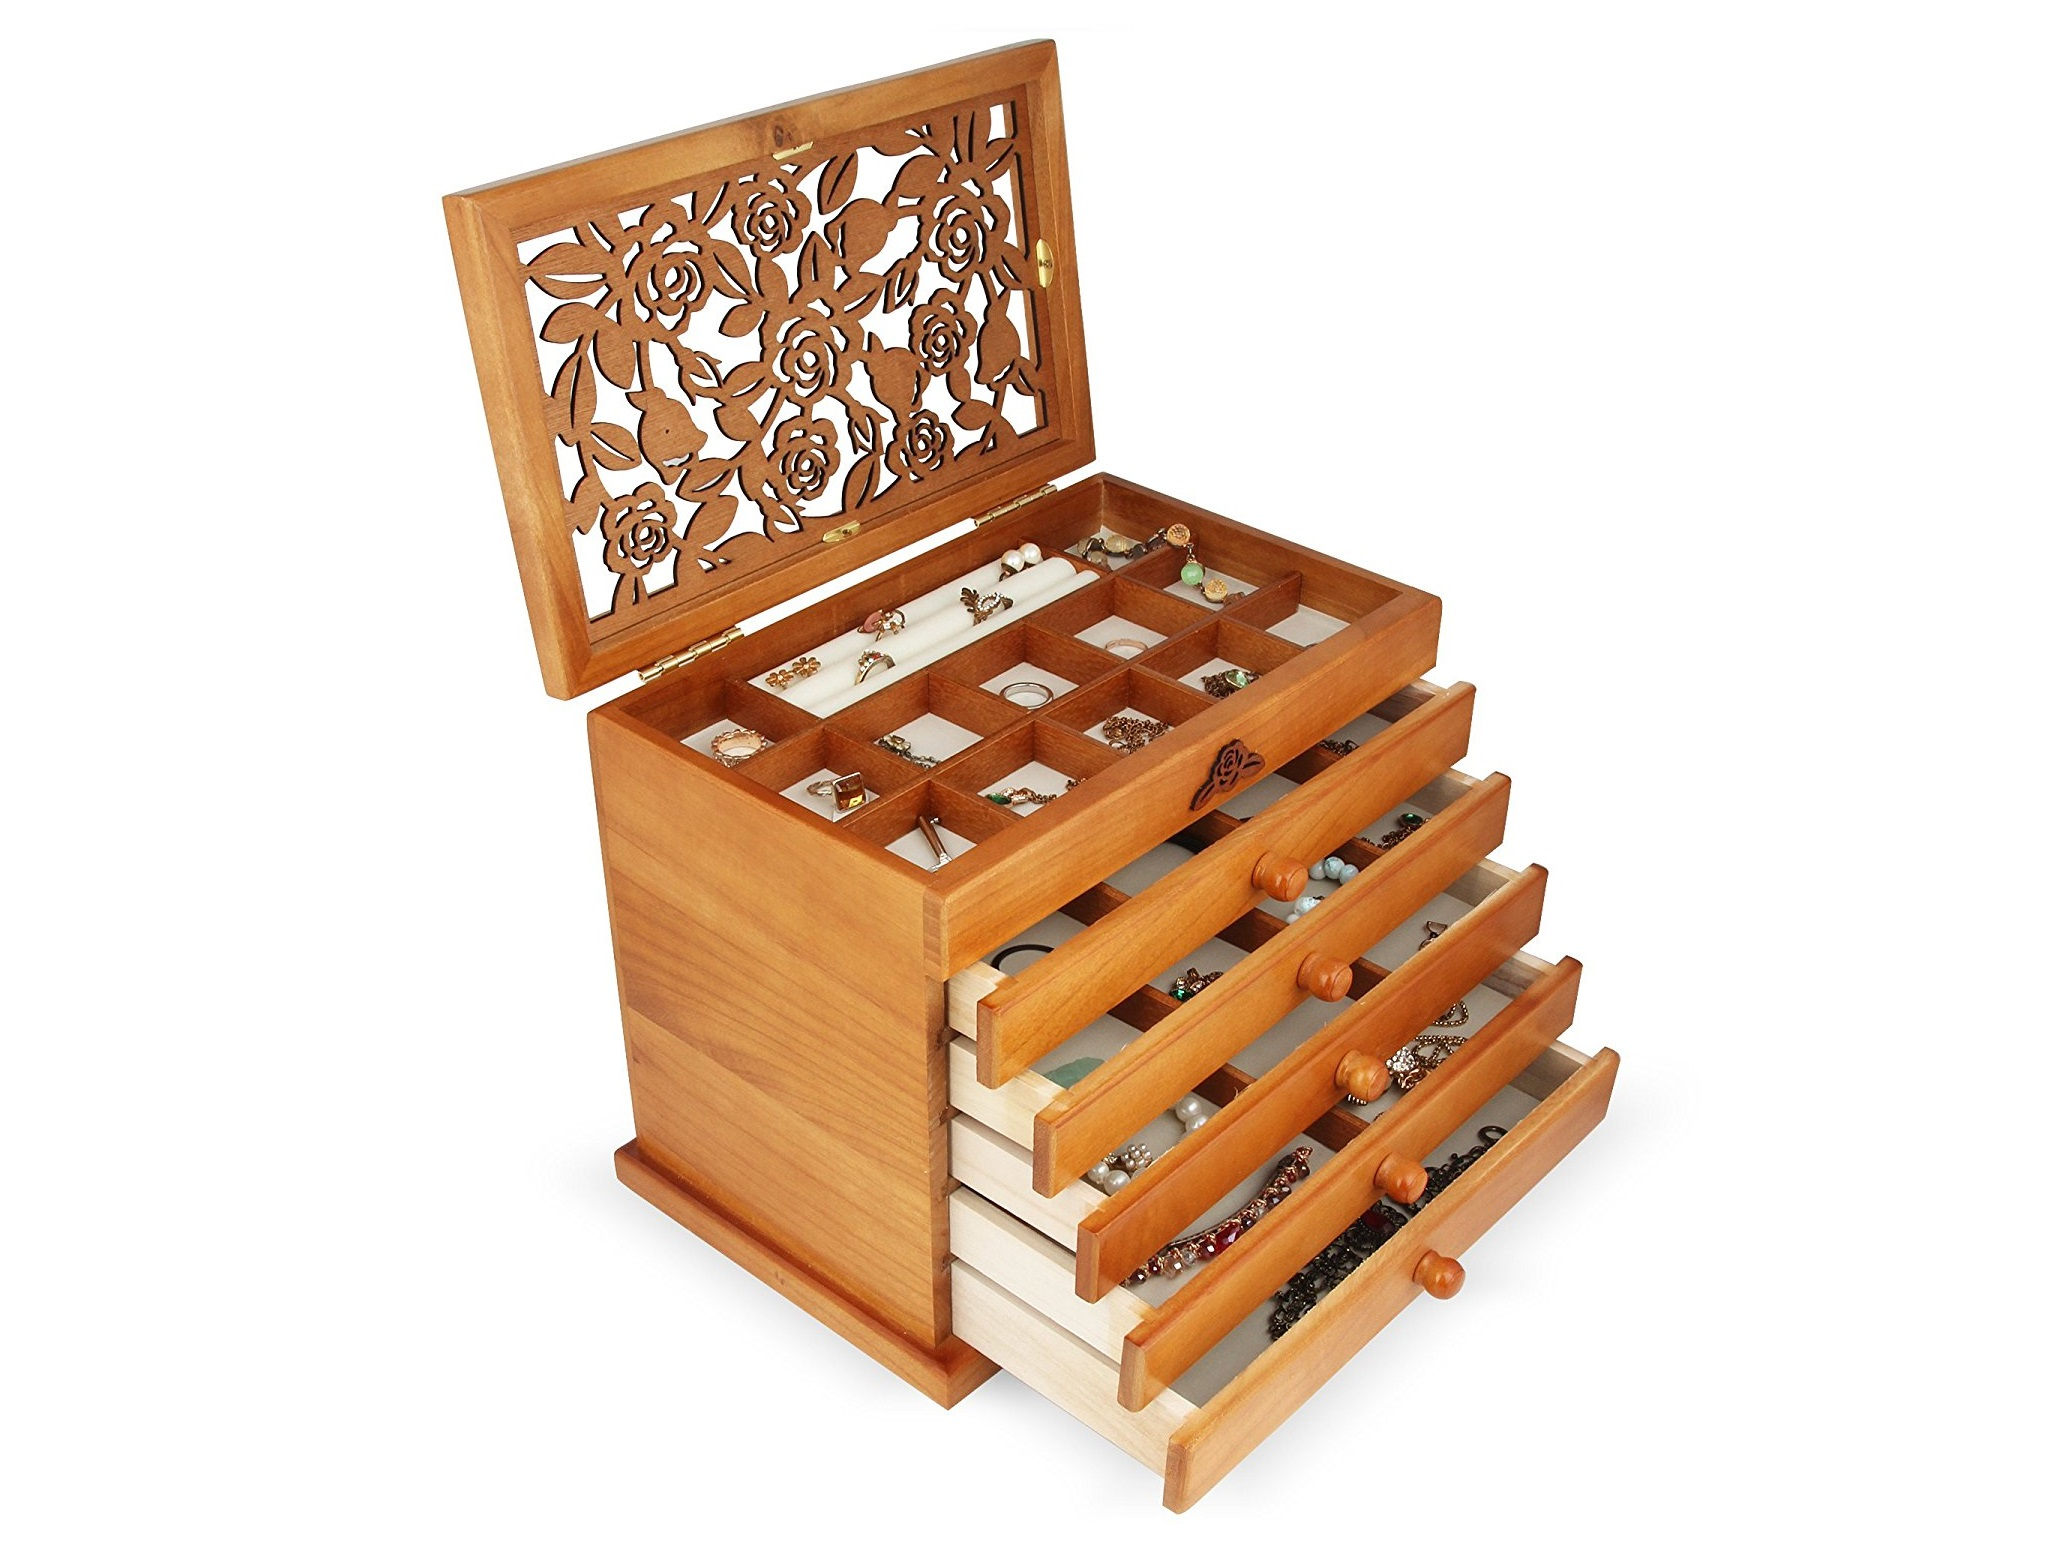 Top 10 Best Wooden Jewelry Boxes in 2020